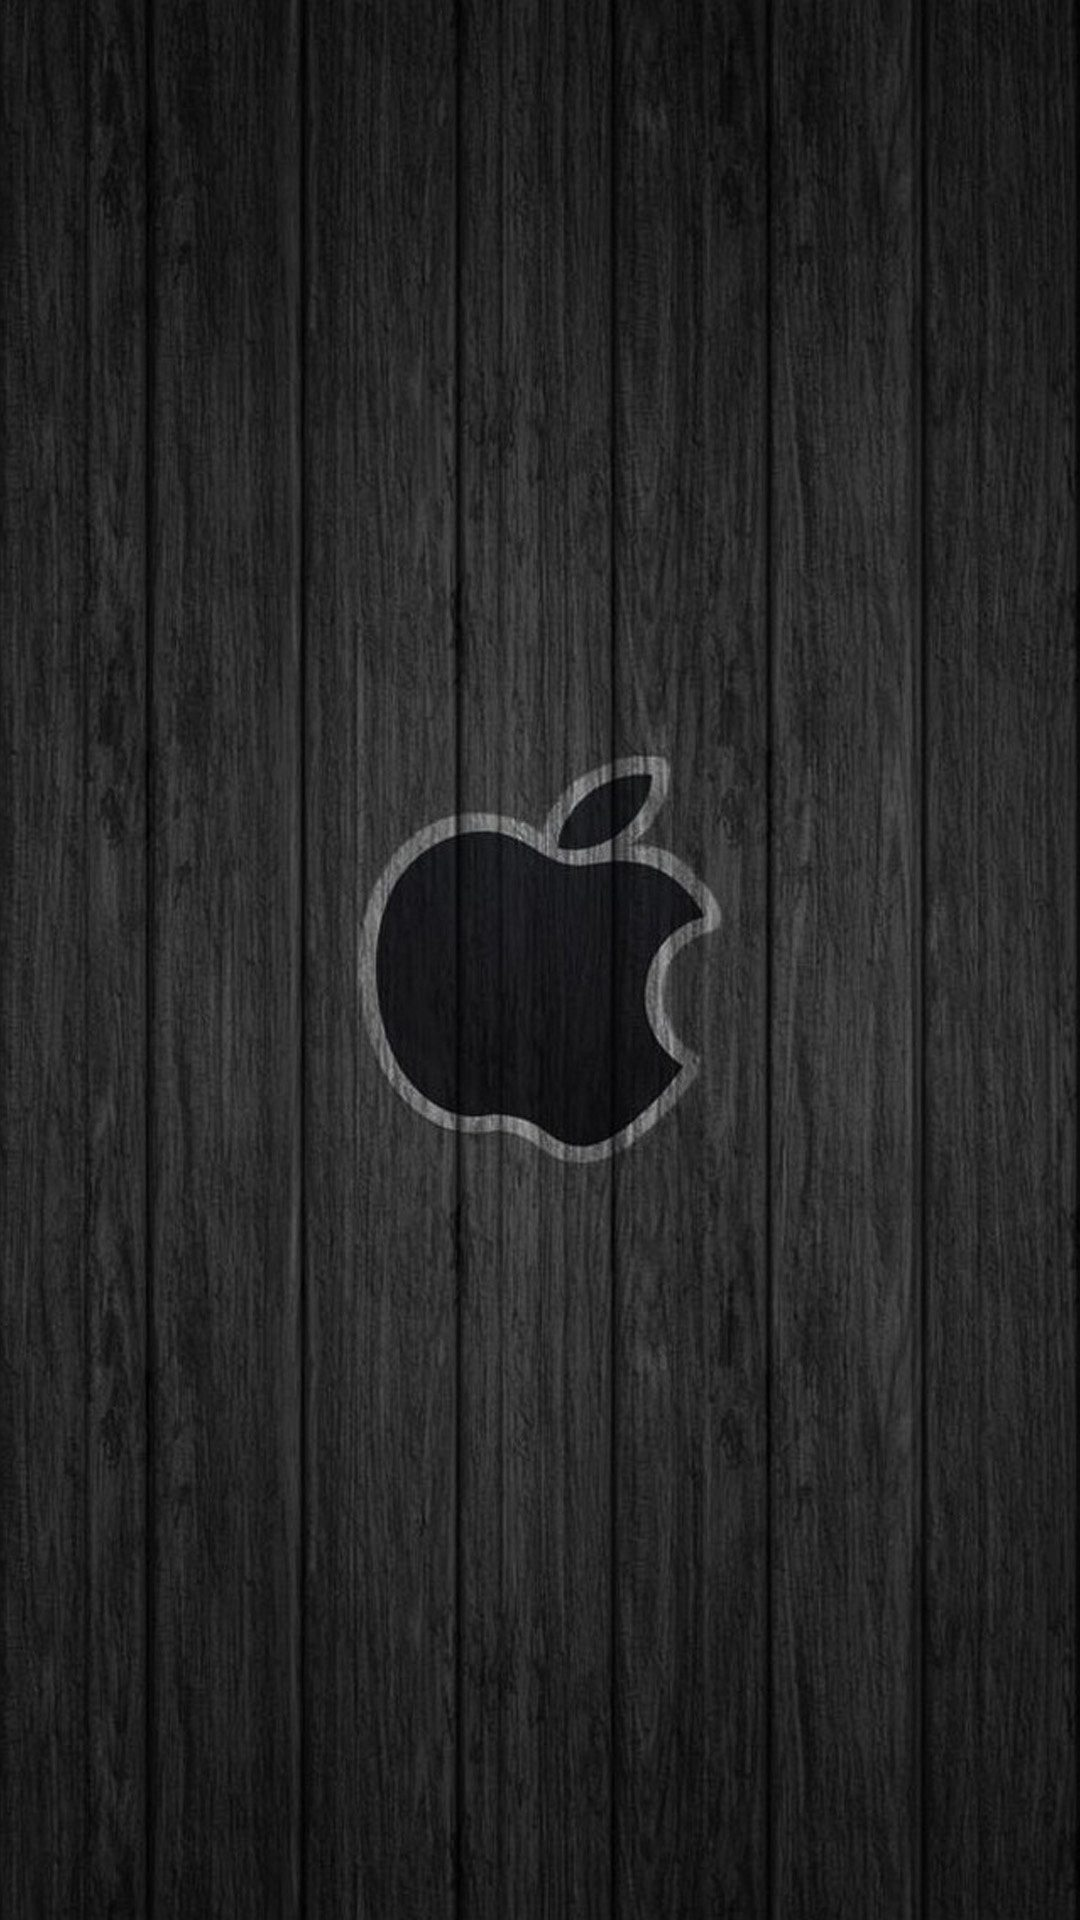 Apple wallpaper iphone hd - Wallpaper iphone 6 full hd ...